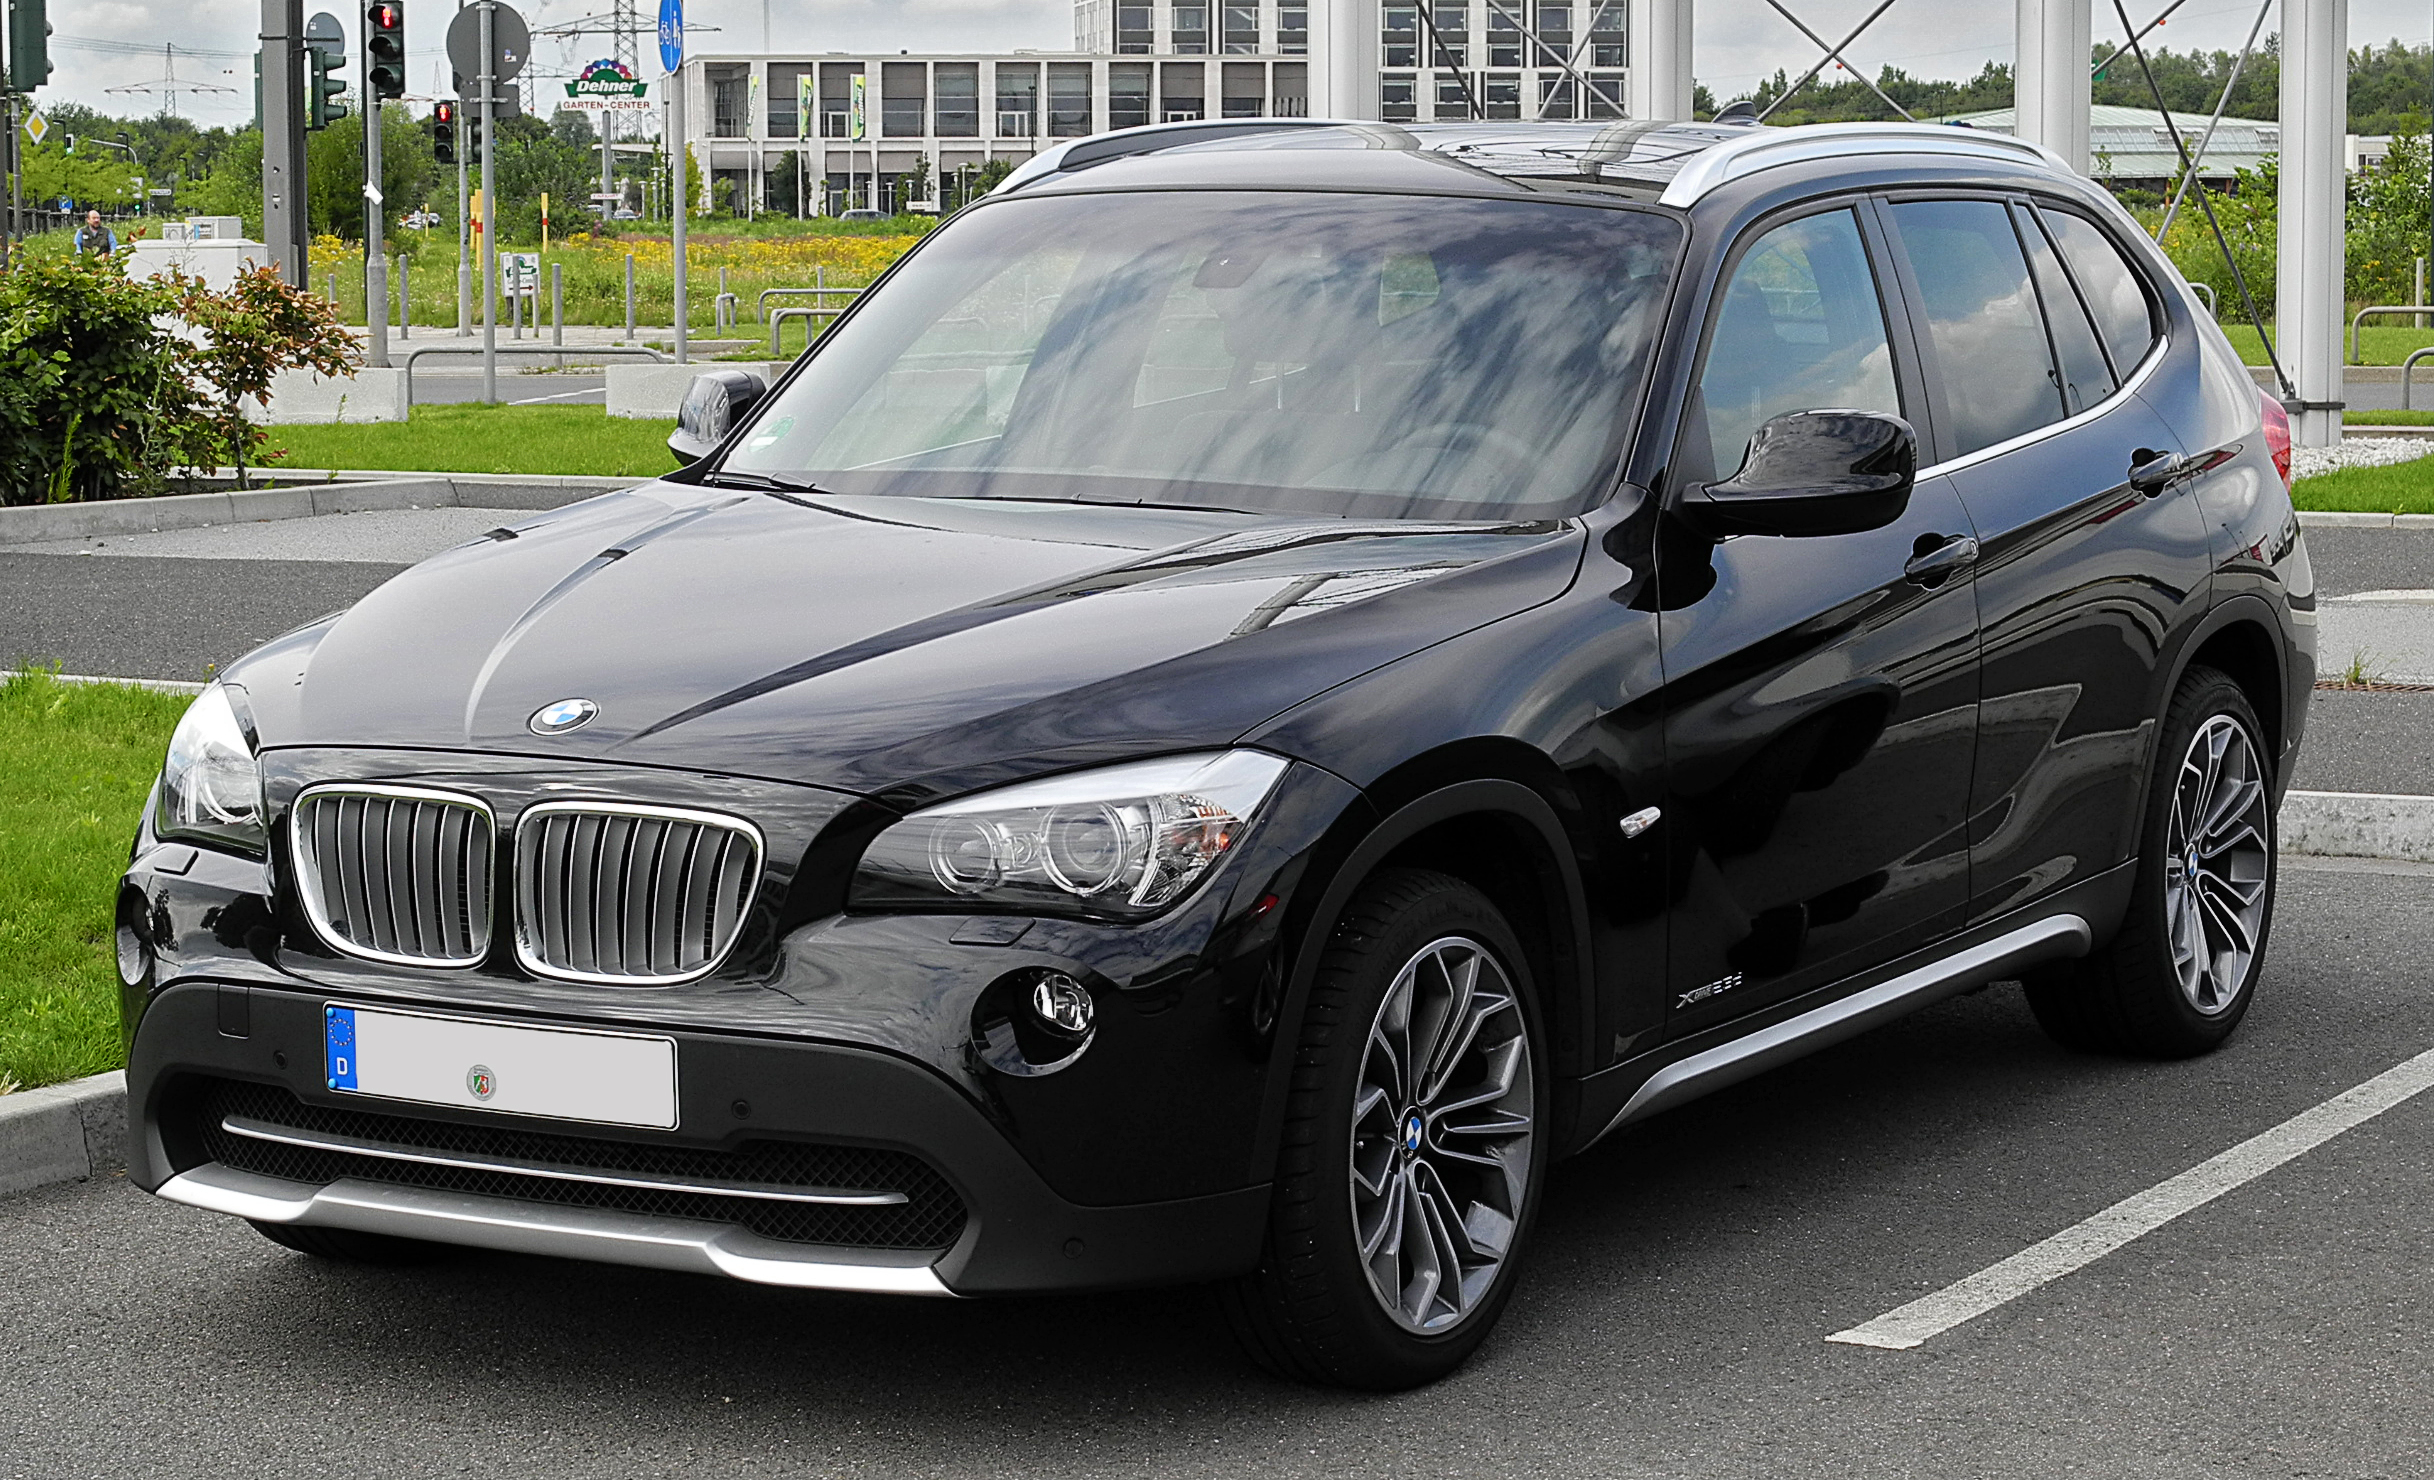 file bmw x1 xdrive23d e84 frontansicht 2 juli 2011 d wikimedia commons. Black Bedroom Furniture Sets. Home Design Ideas